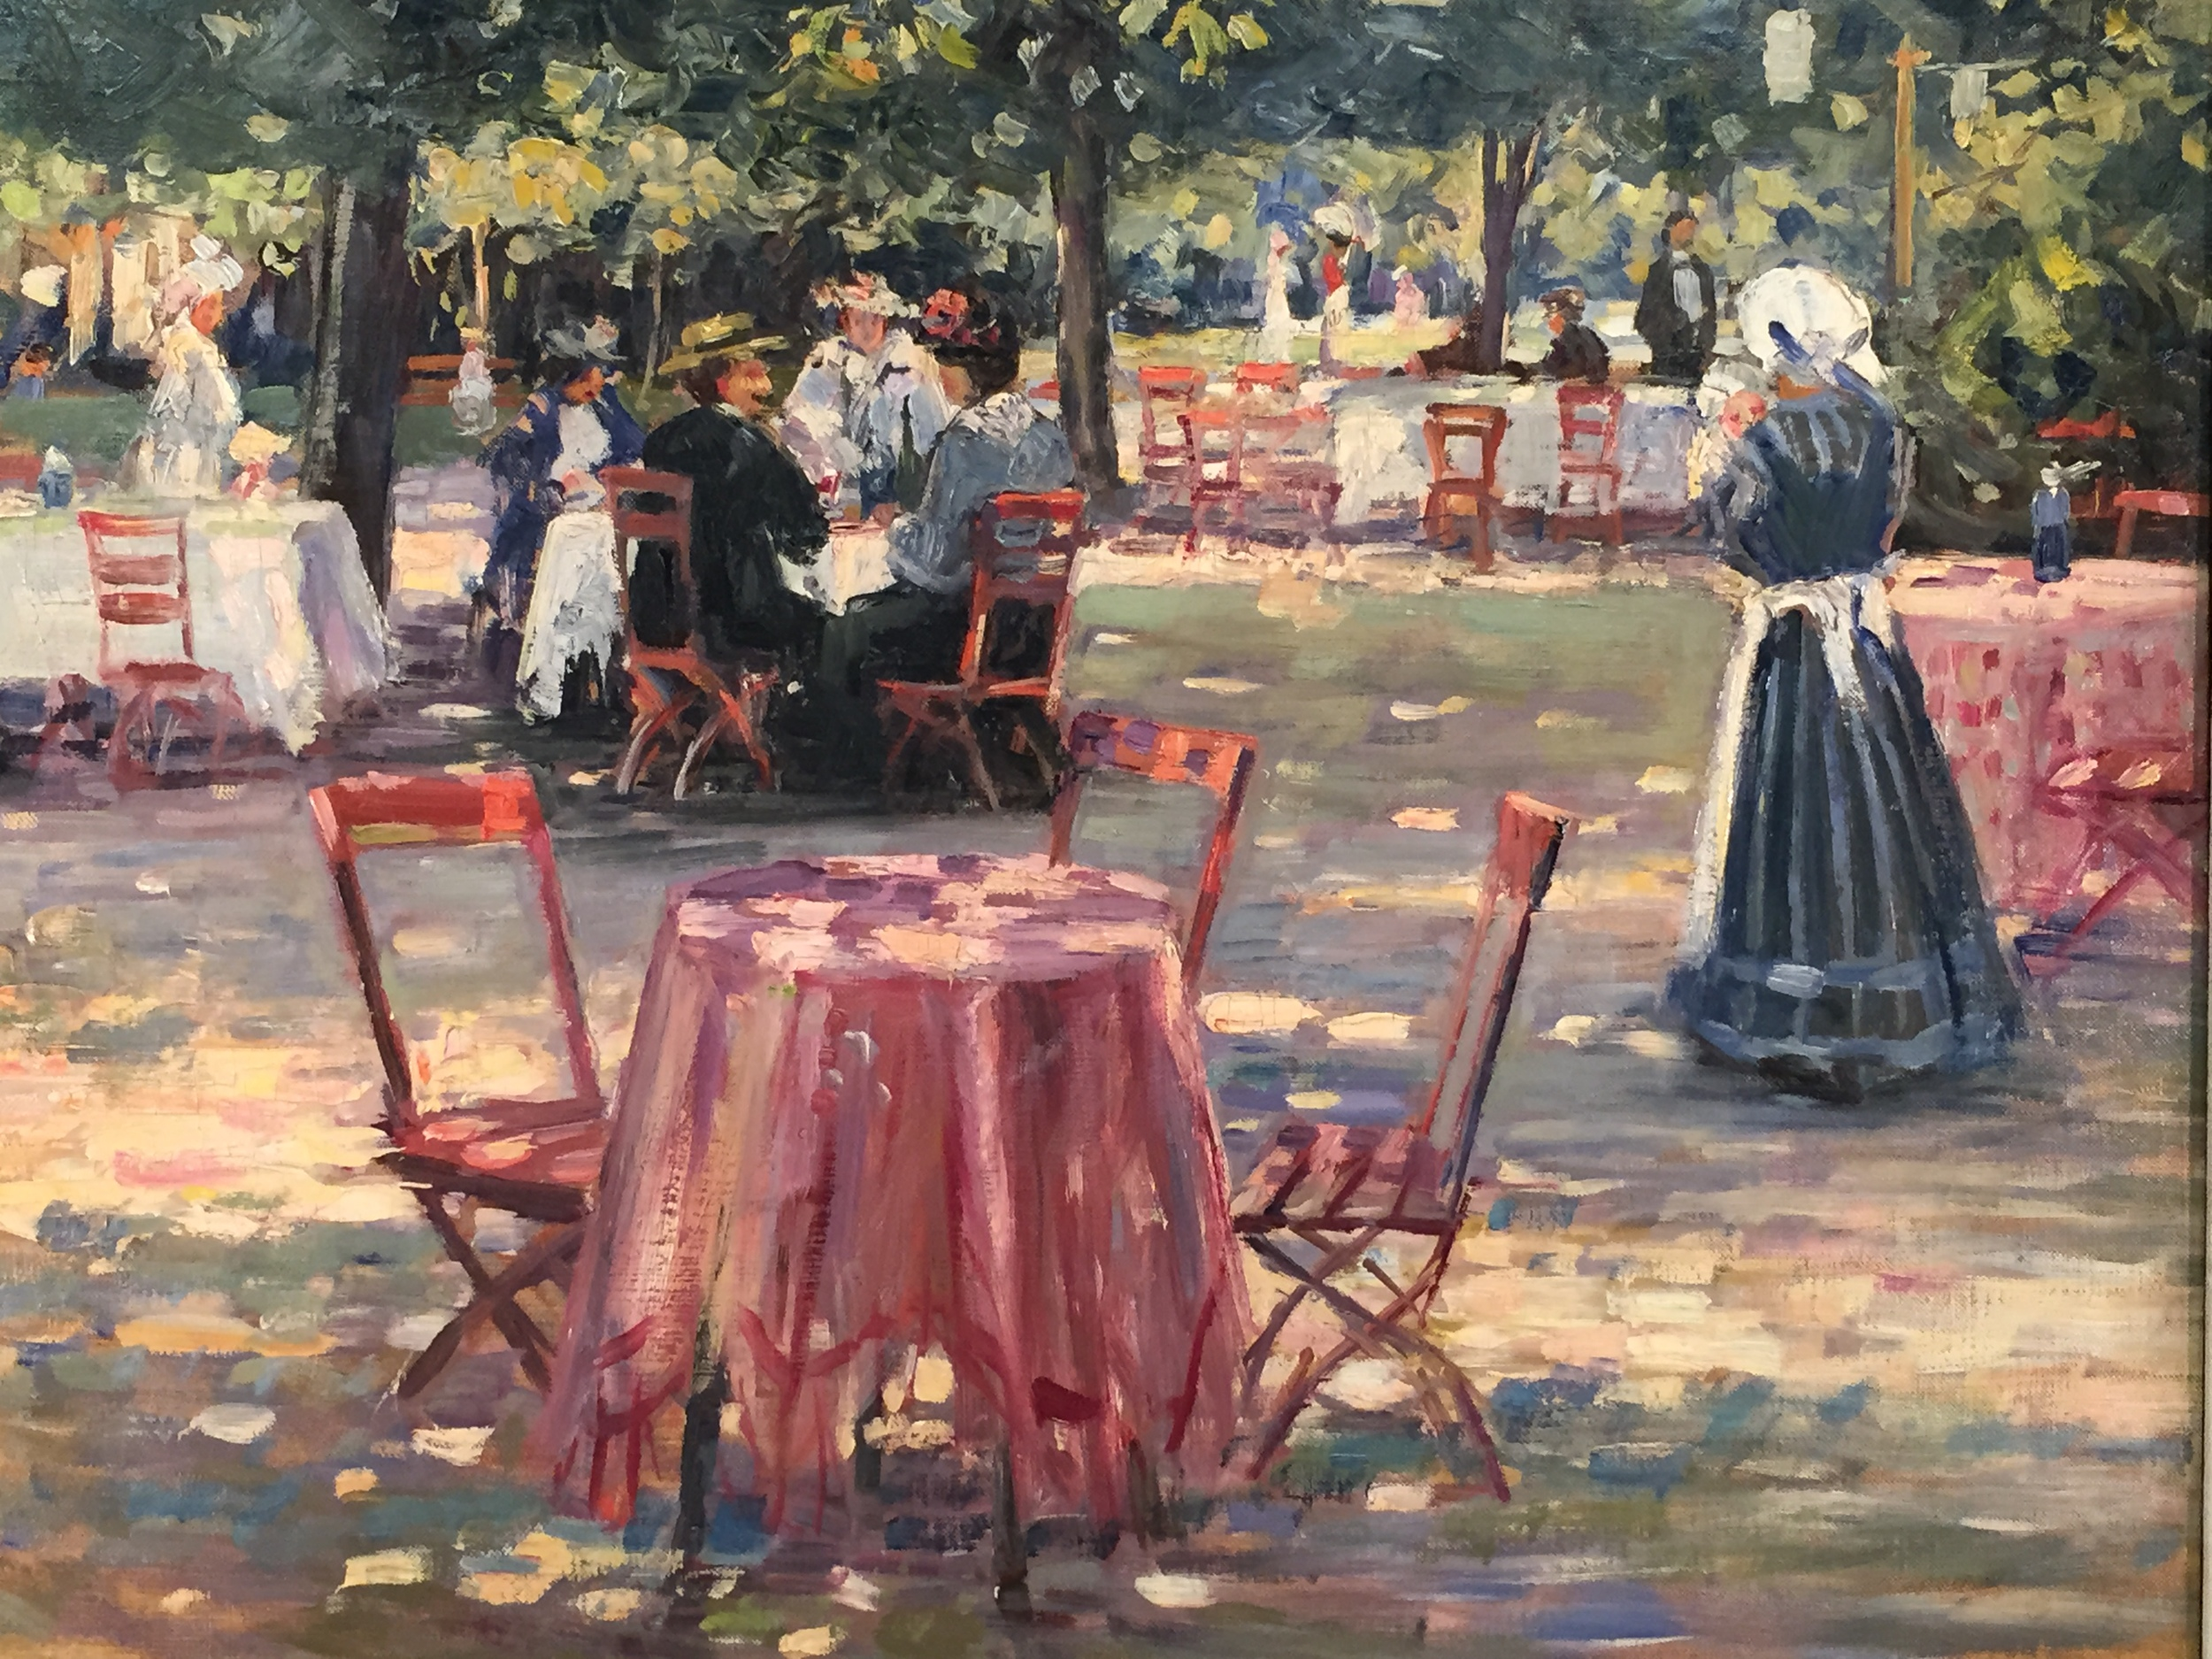 attributed to Max Liebermann